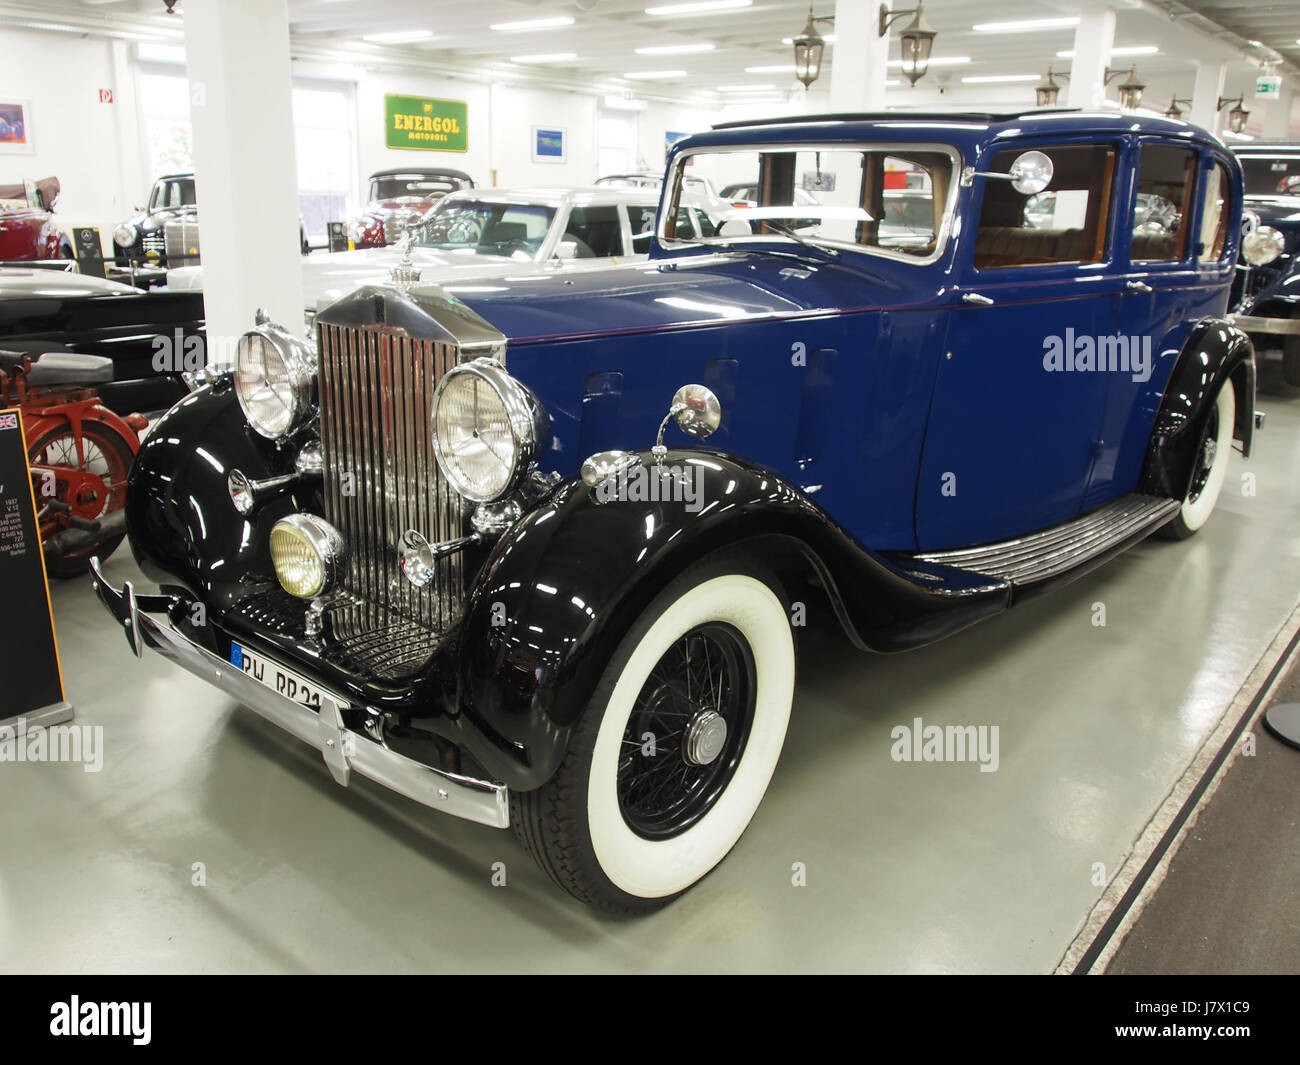 1937 Rolls Royce Phantom Iii High Resolution Stock Photography And Images Alamy